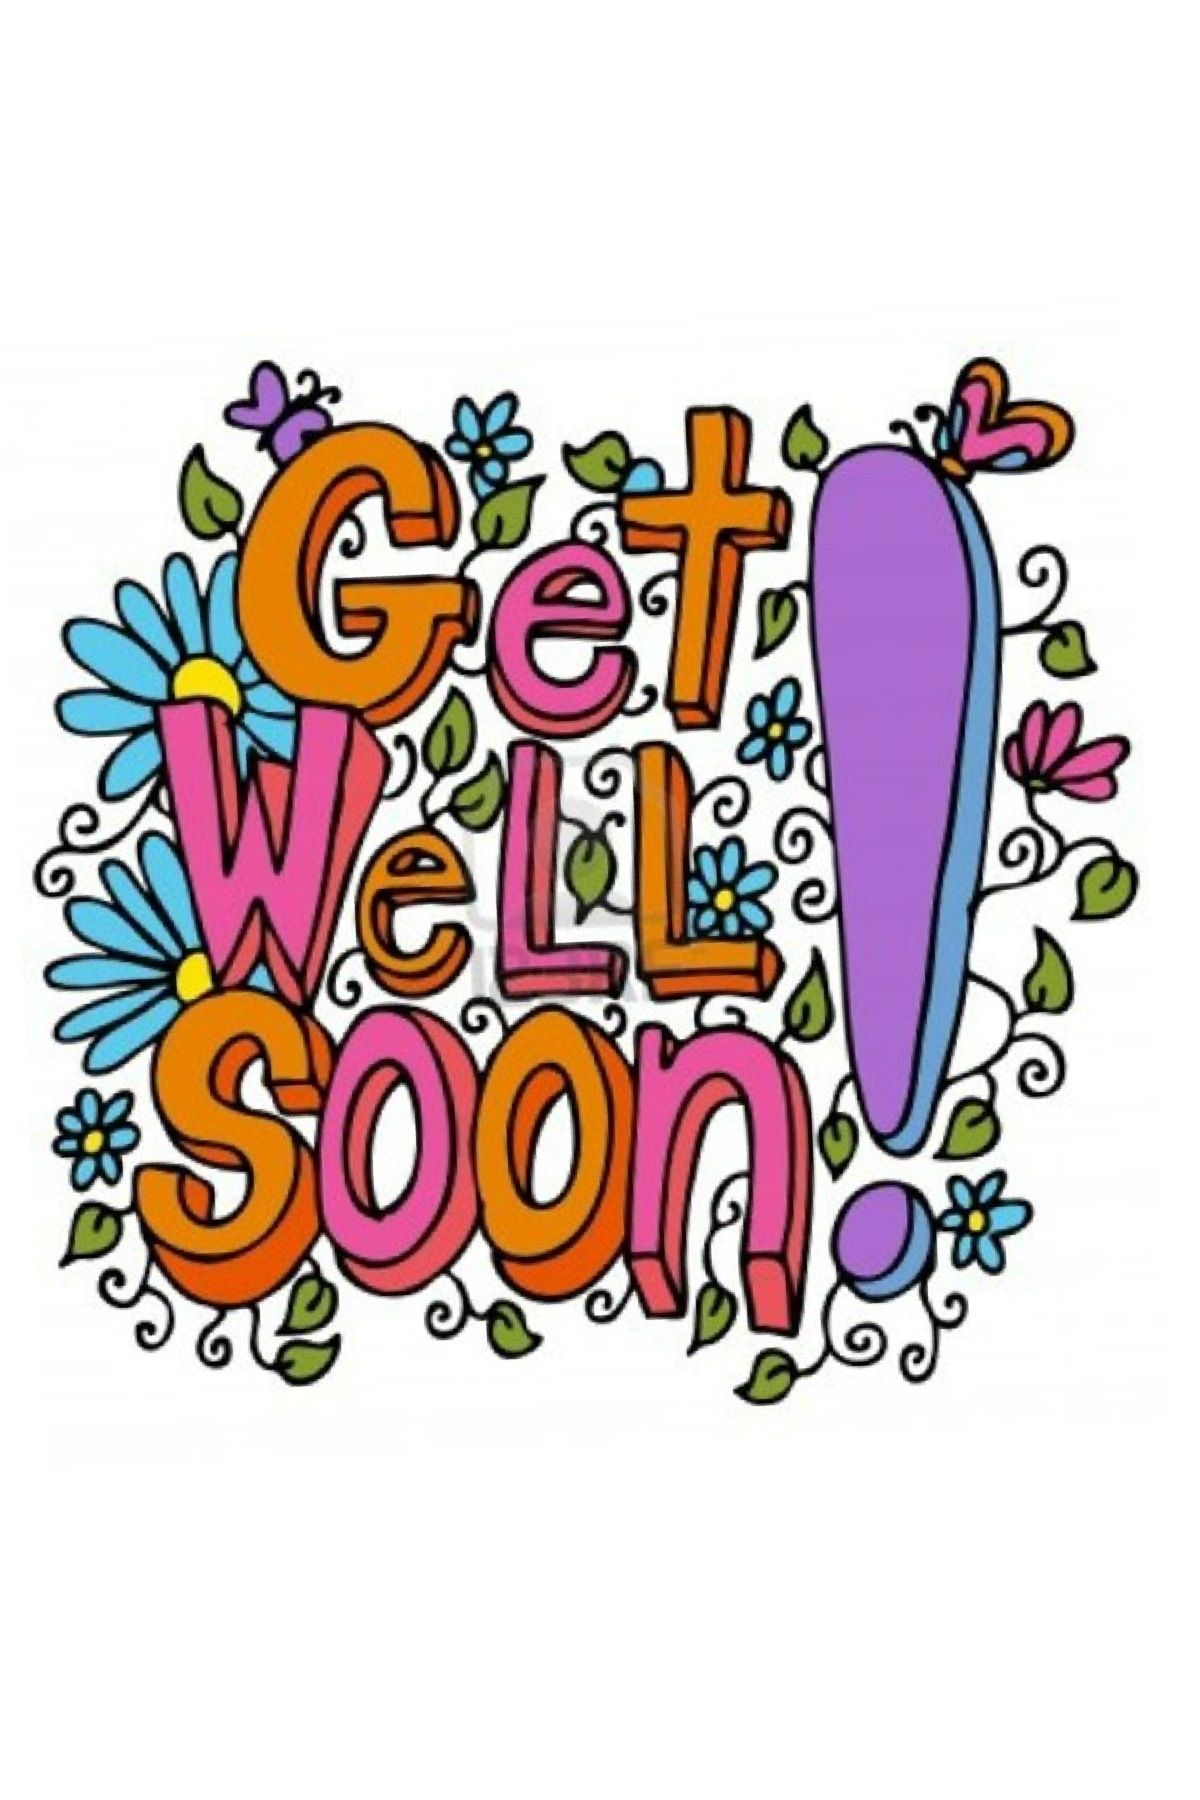 Particular Clients Explore Get Well Get Well Soon Messages Family Get Well Soon Messages Get Well Soon Comfort Pinterest Get Well Soon Messages cards Get Well Soon Message